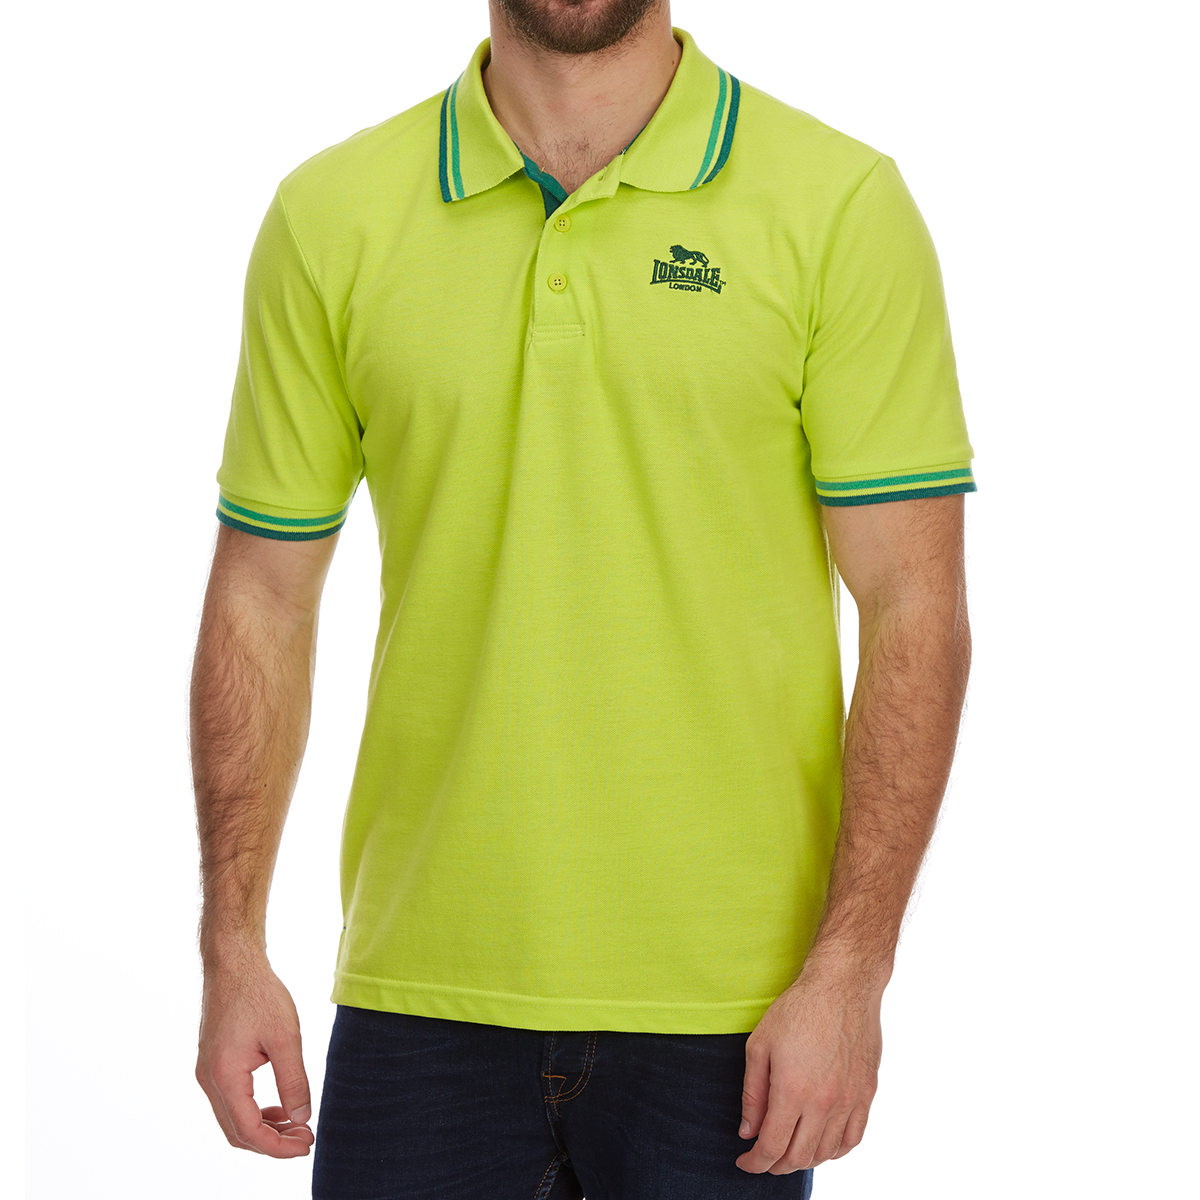 Lonsdale Men's Short-Sleeve Tipped Polo Shirt - Green, 4XL